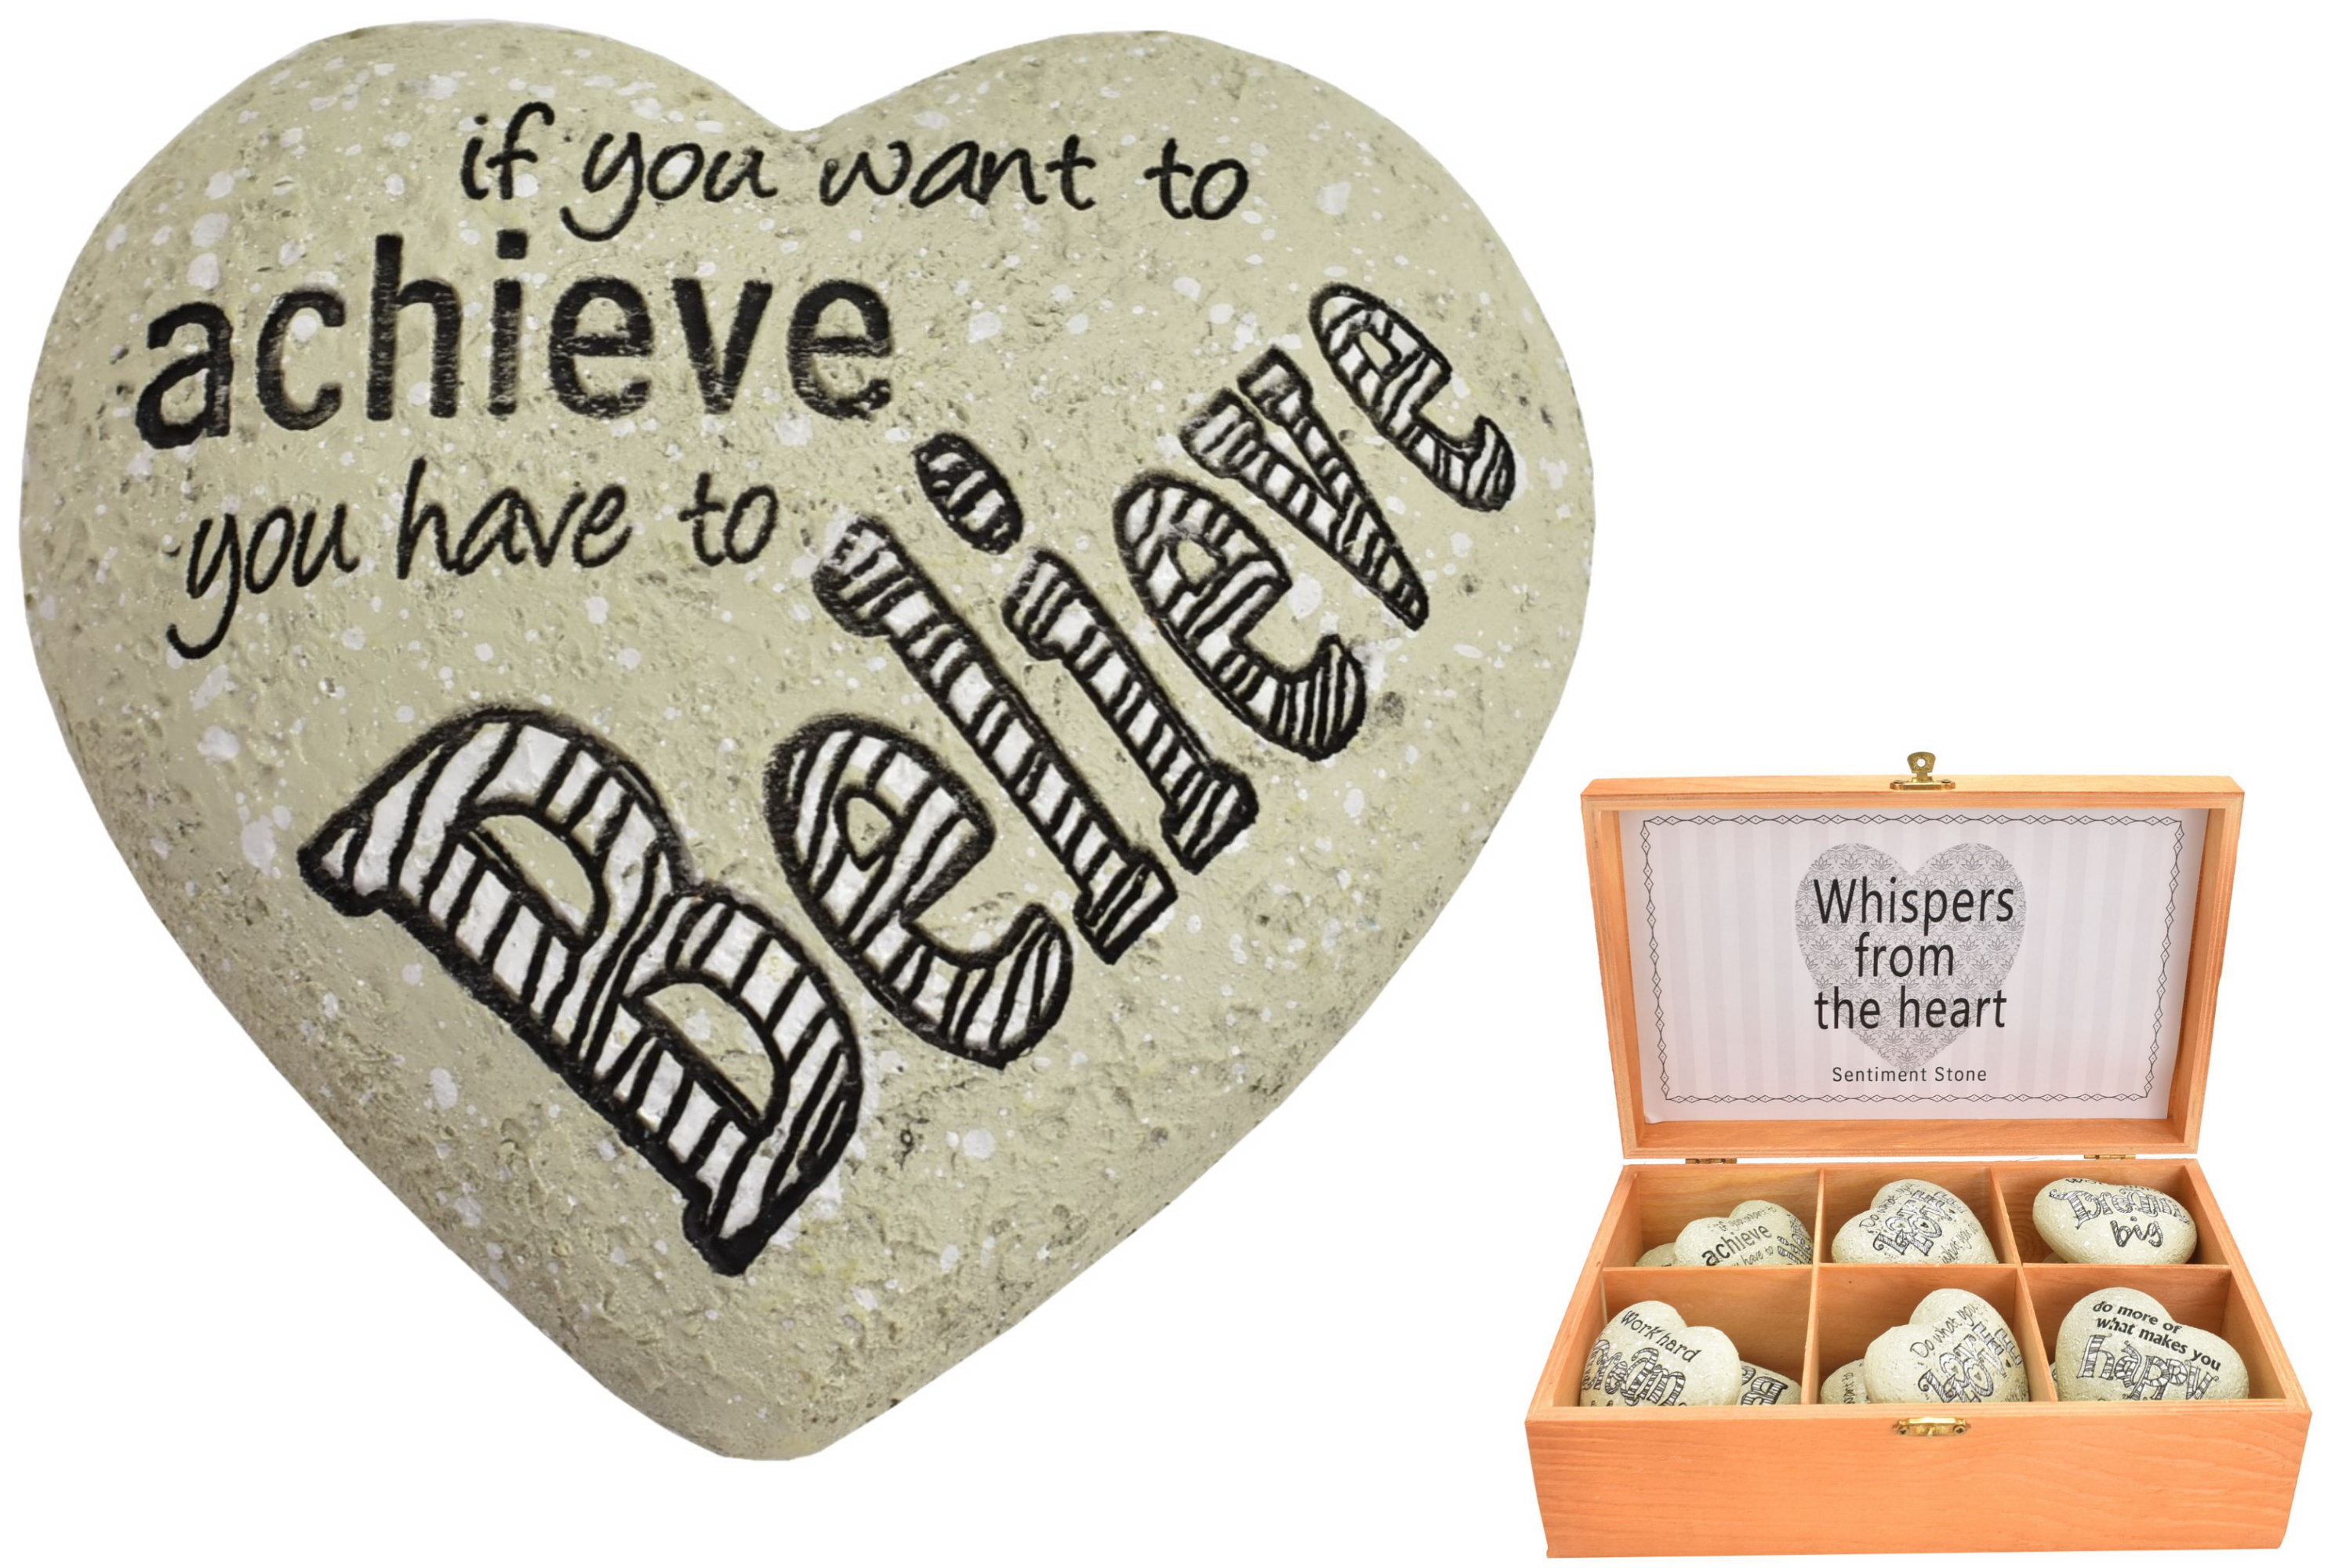 Heart Shaped Sentiment Stone (Assorted) In Display Box